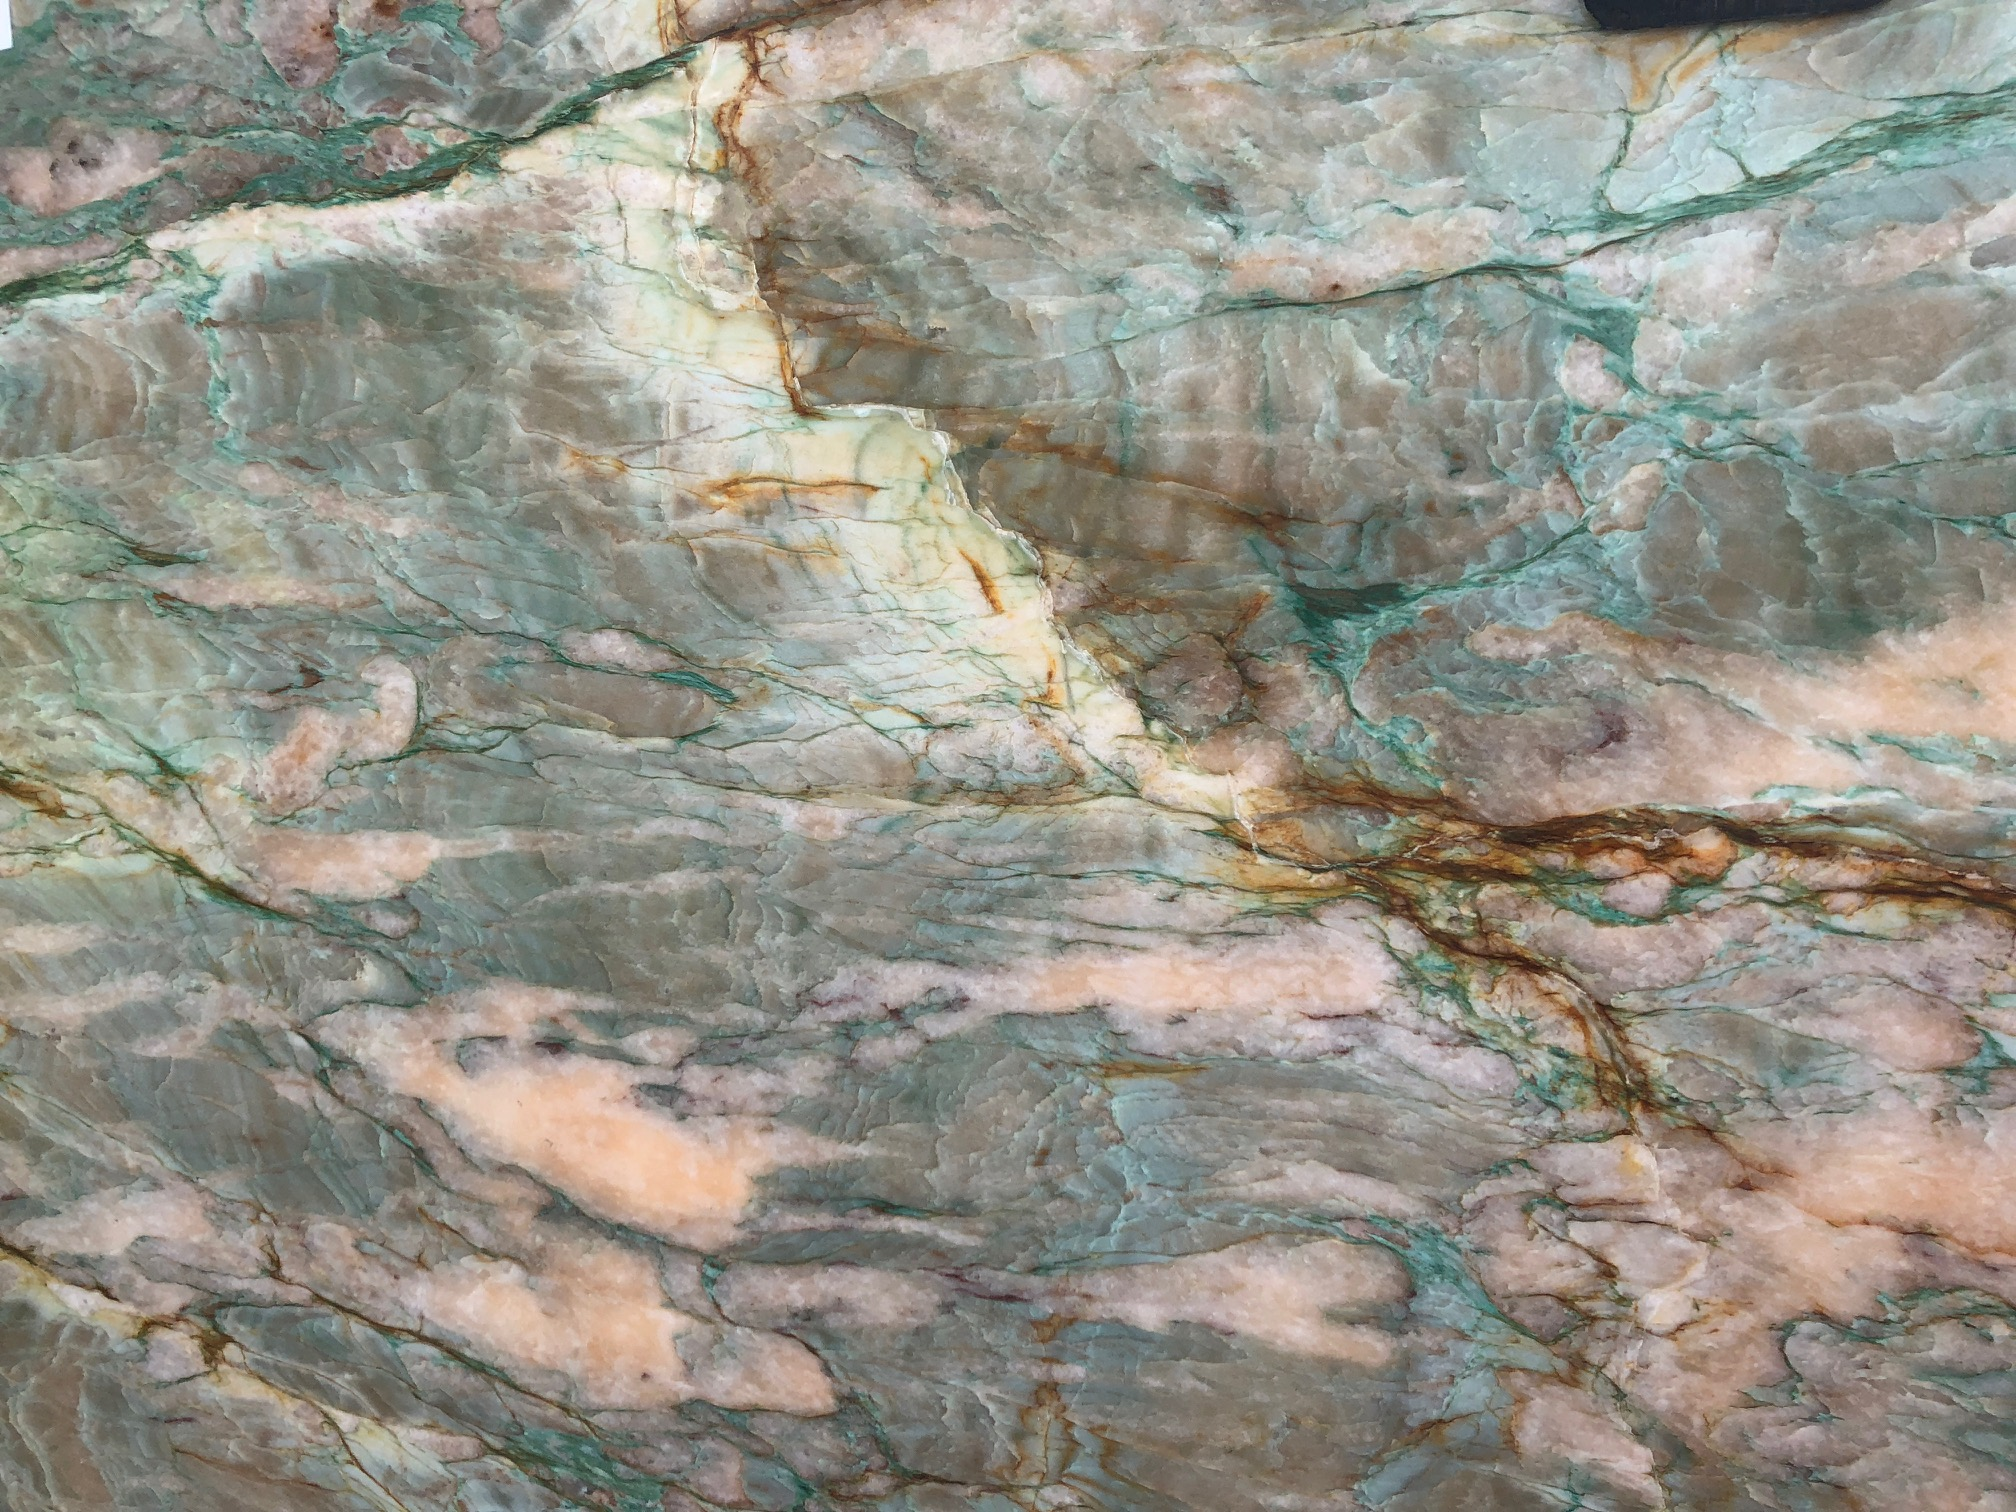 Caring For Quartzite Countertops - Use Natural Stone